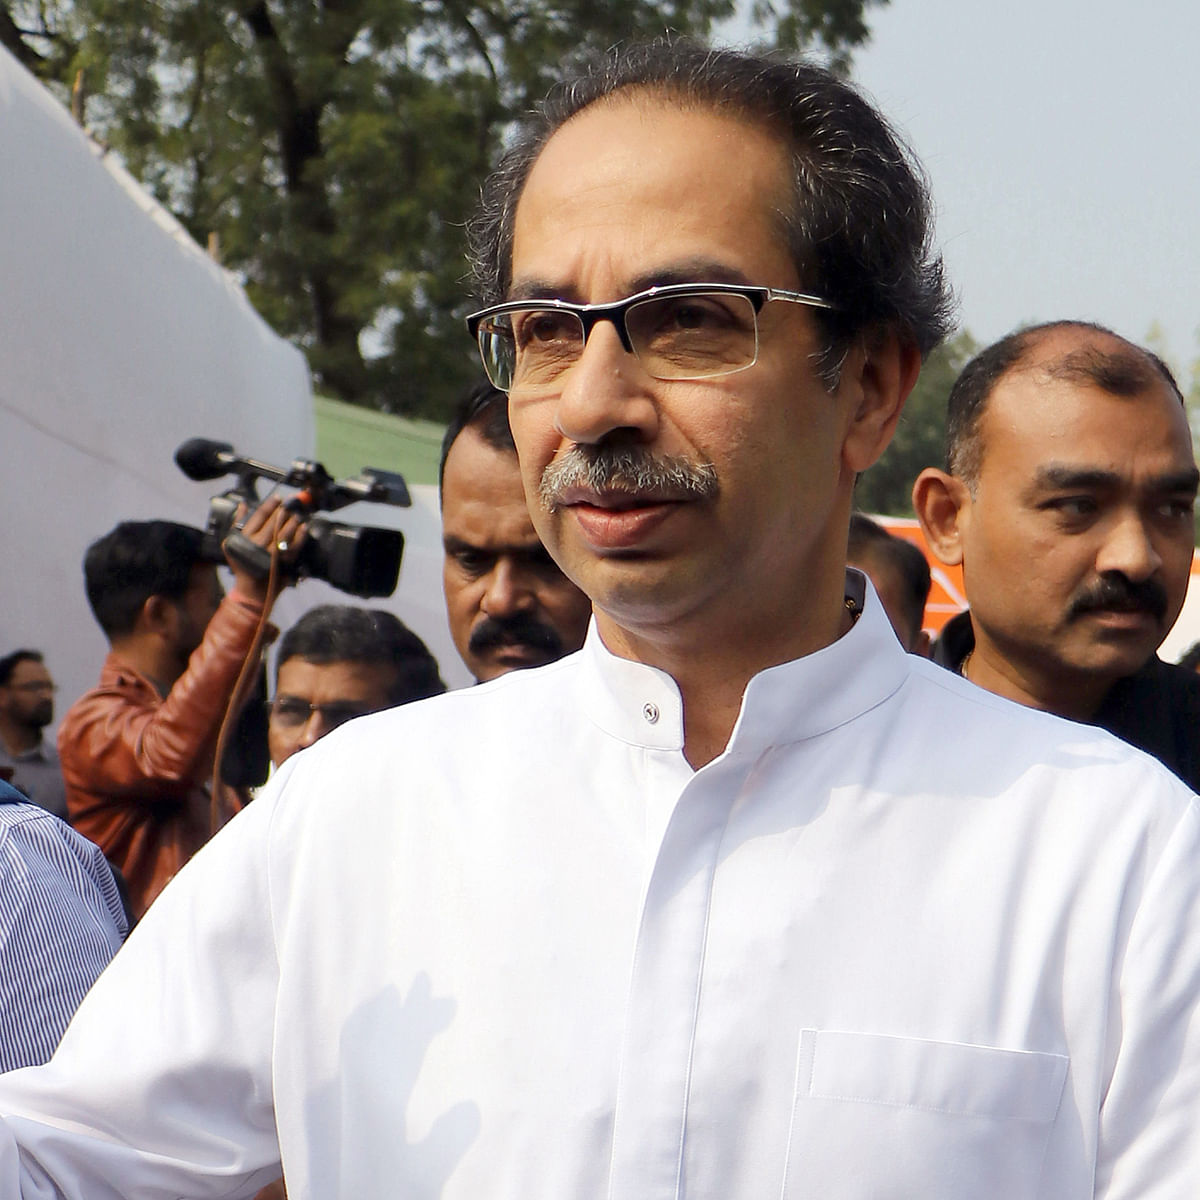 'Where will the immigrants settle in India?': Uddhav hits out at BJP over CAA